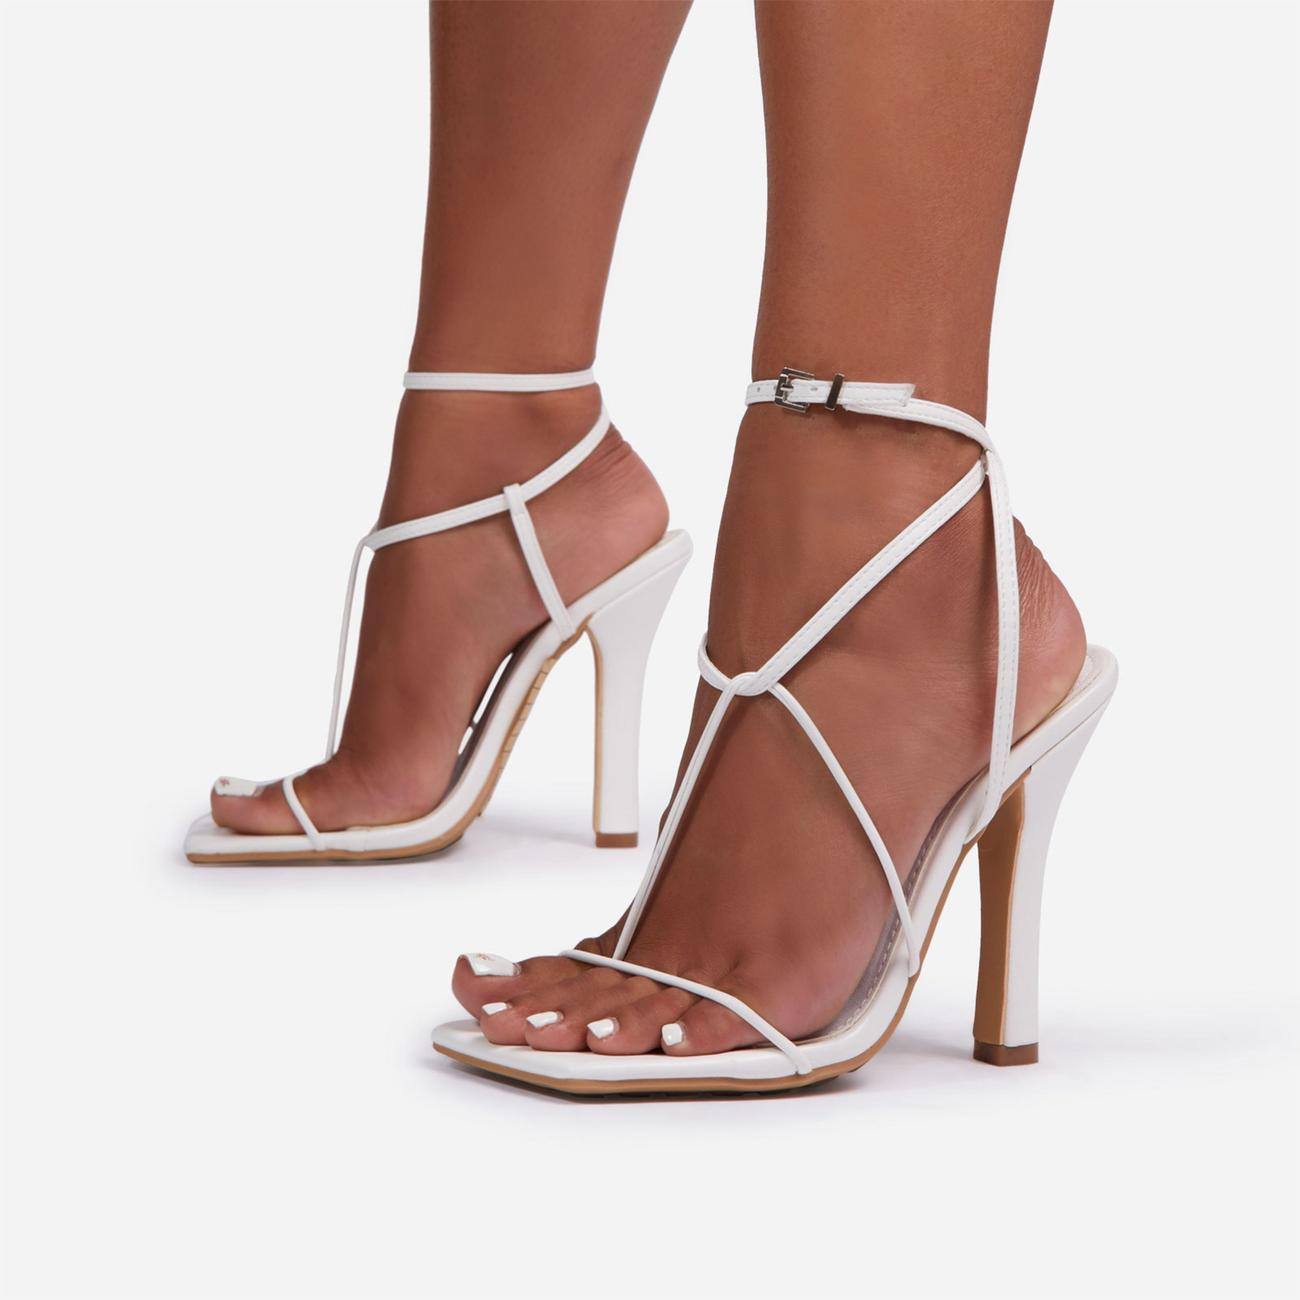 Glambition Strappy Square Toe Track Sole Heel In White Faux Leather Image 1